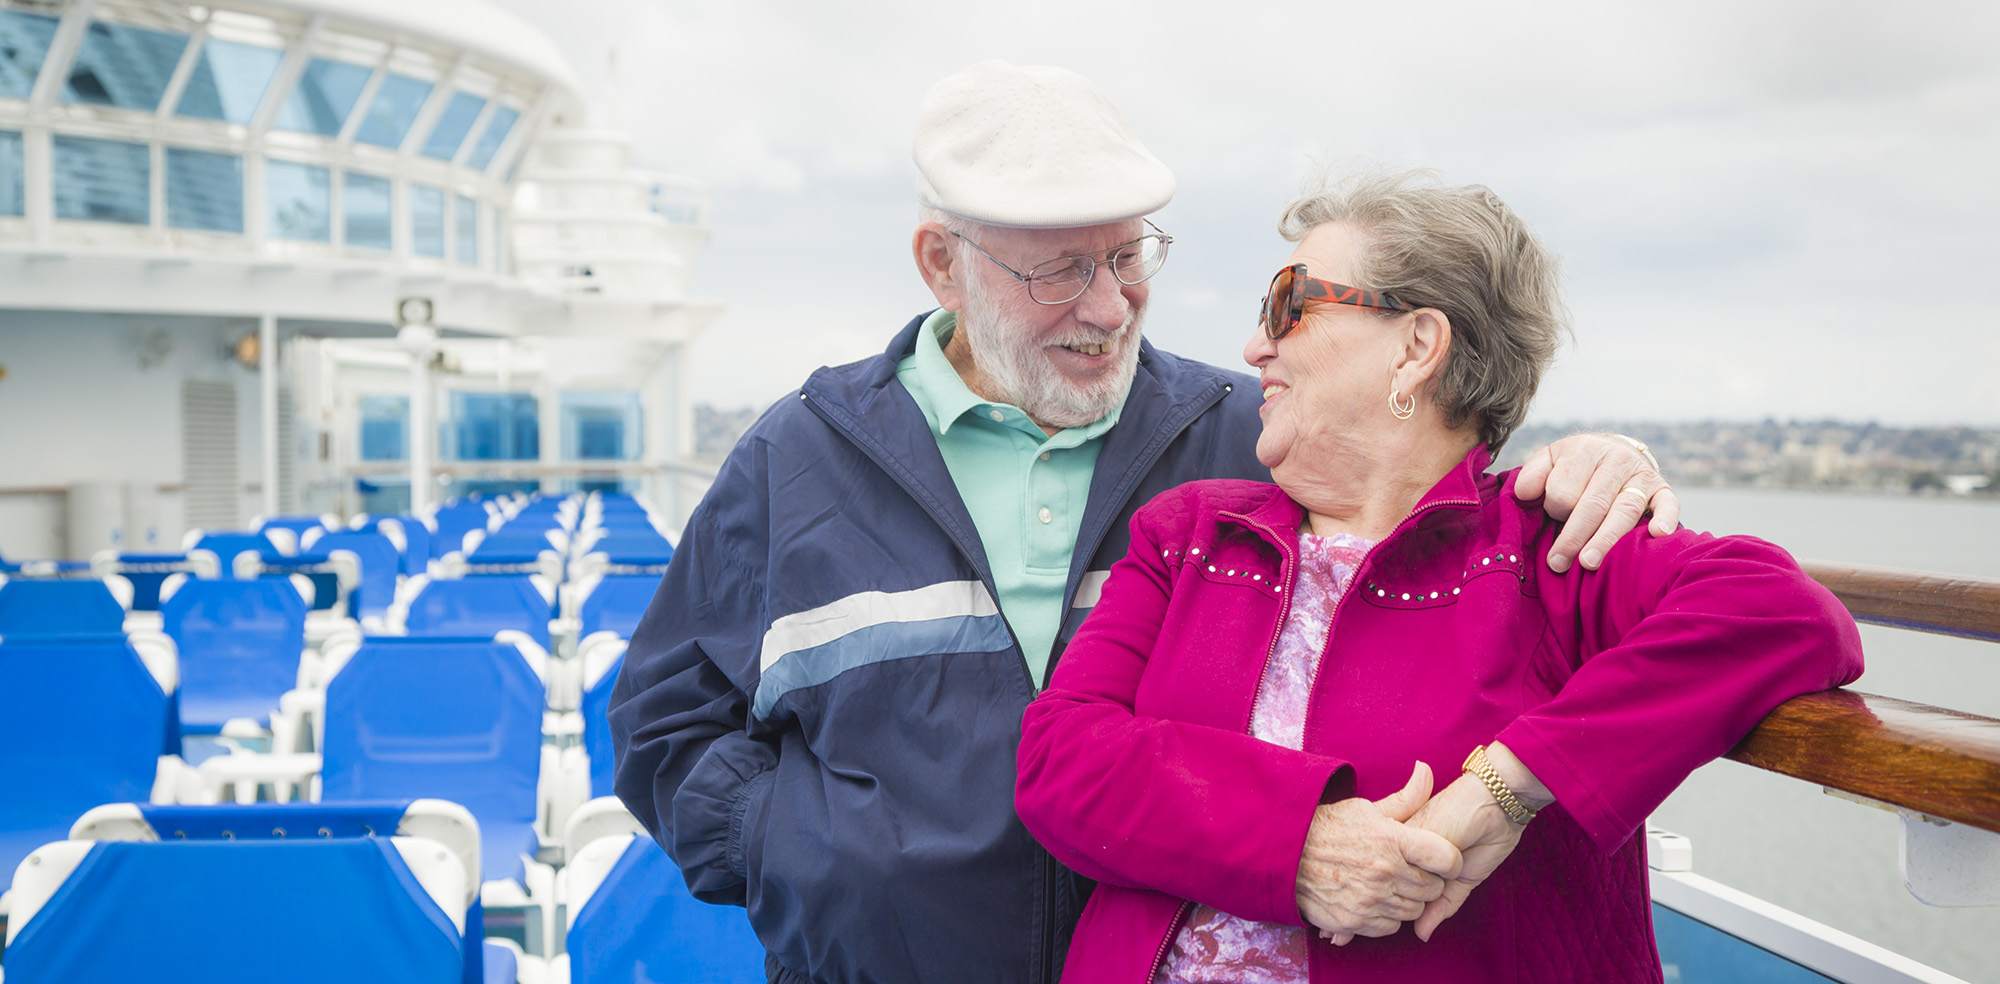 5 things you MUST do to avoid seasickness on a cruise